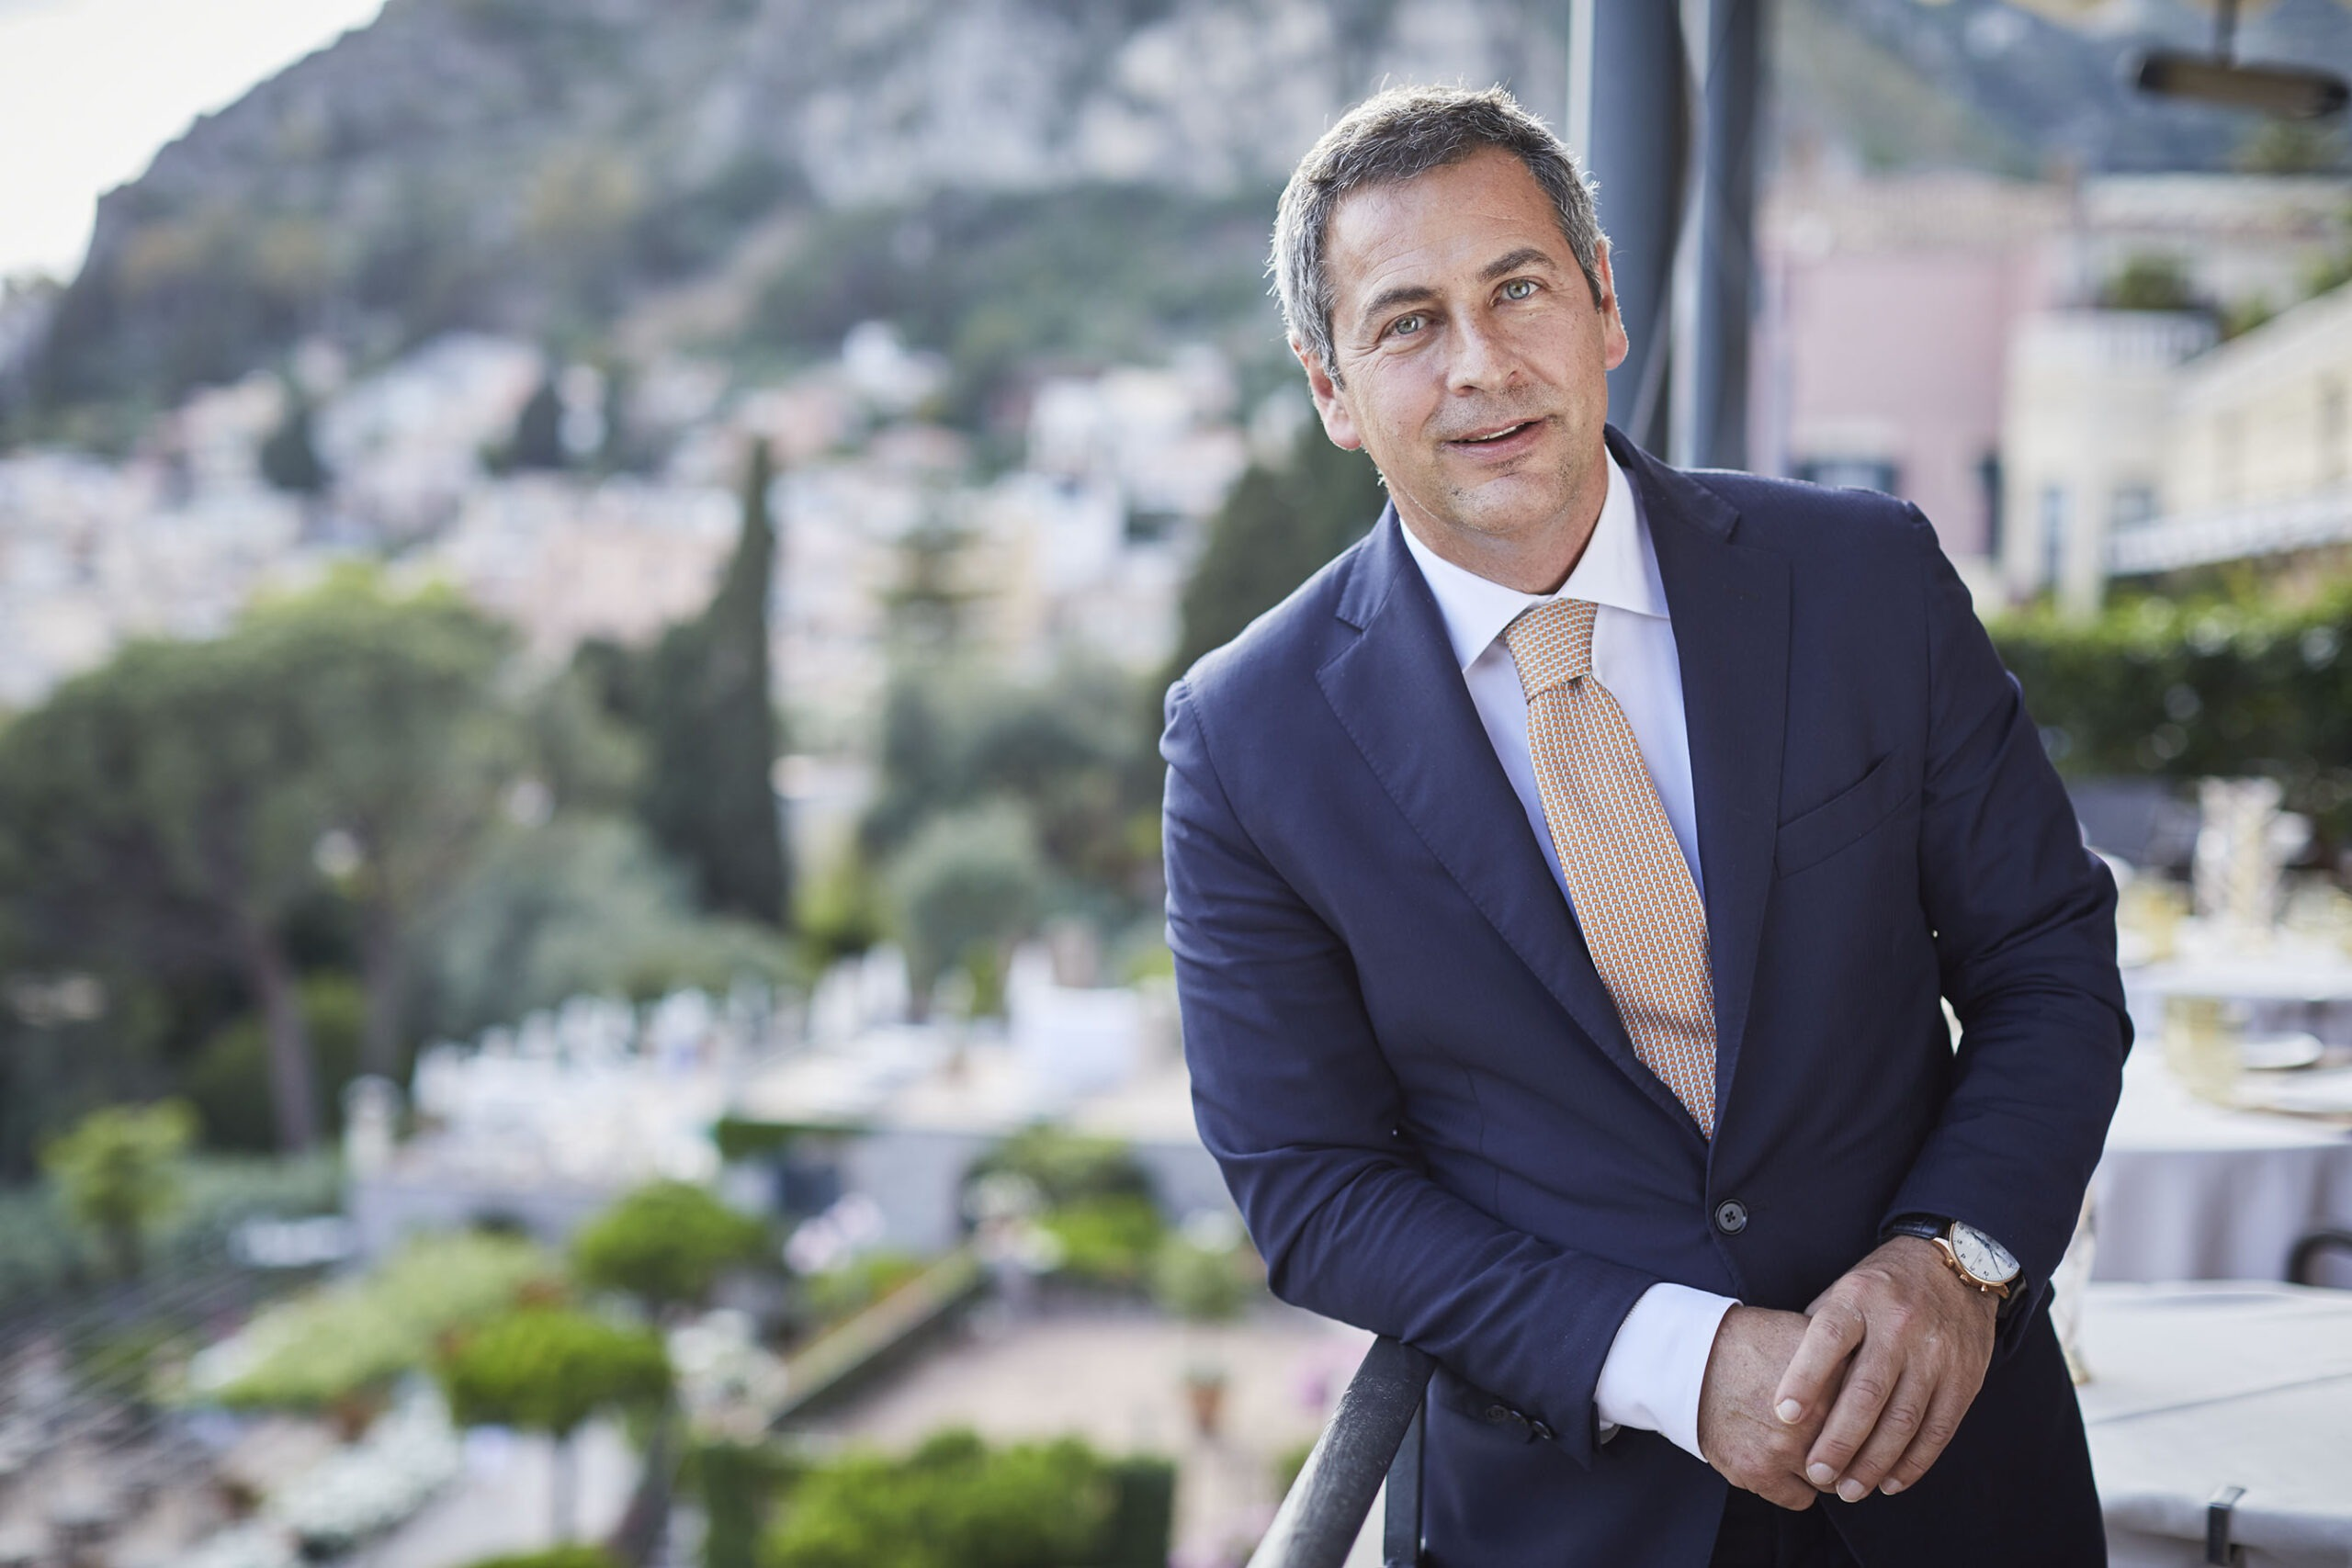 A portrait of Stefano Gegnacorsi, General Manager at the Belmond Grand Hotel Timeo in Taormina